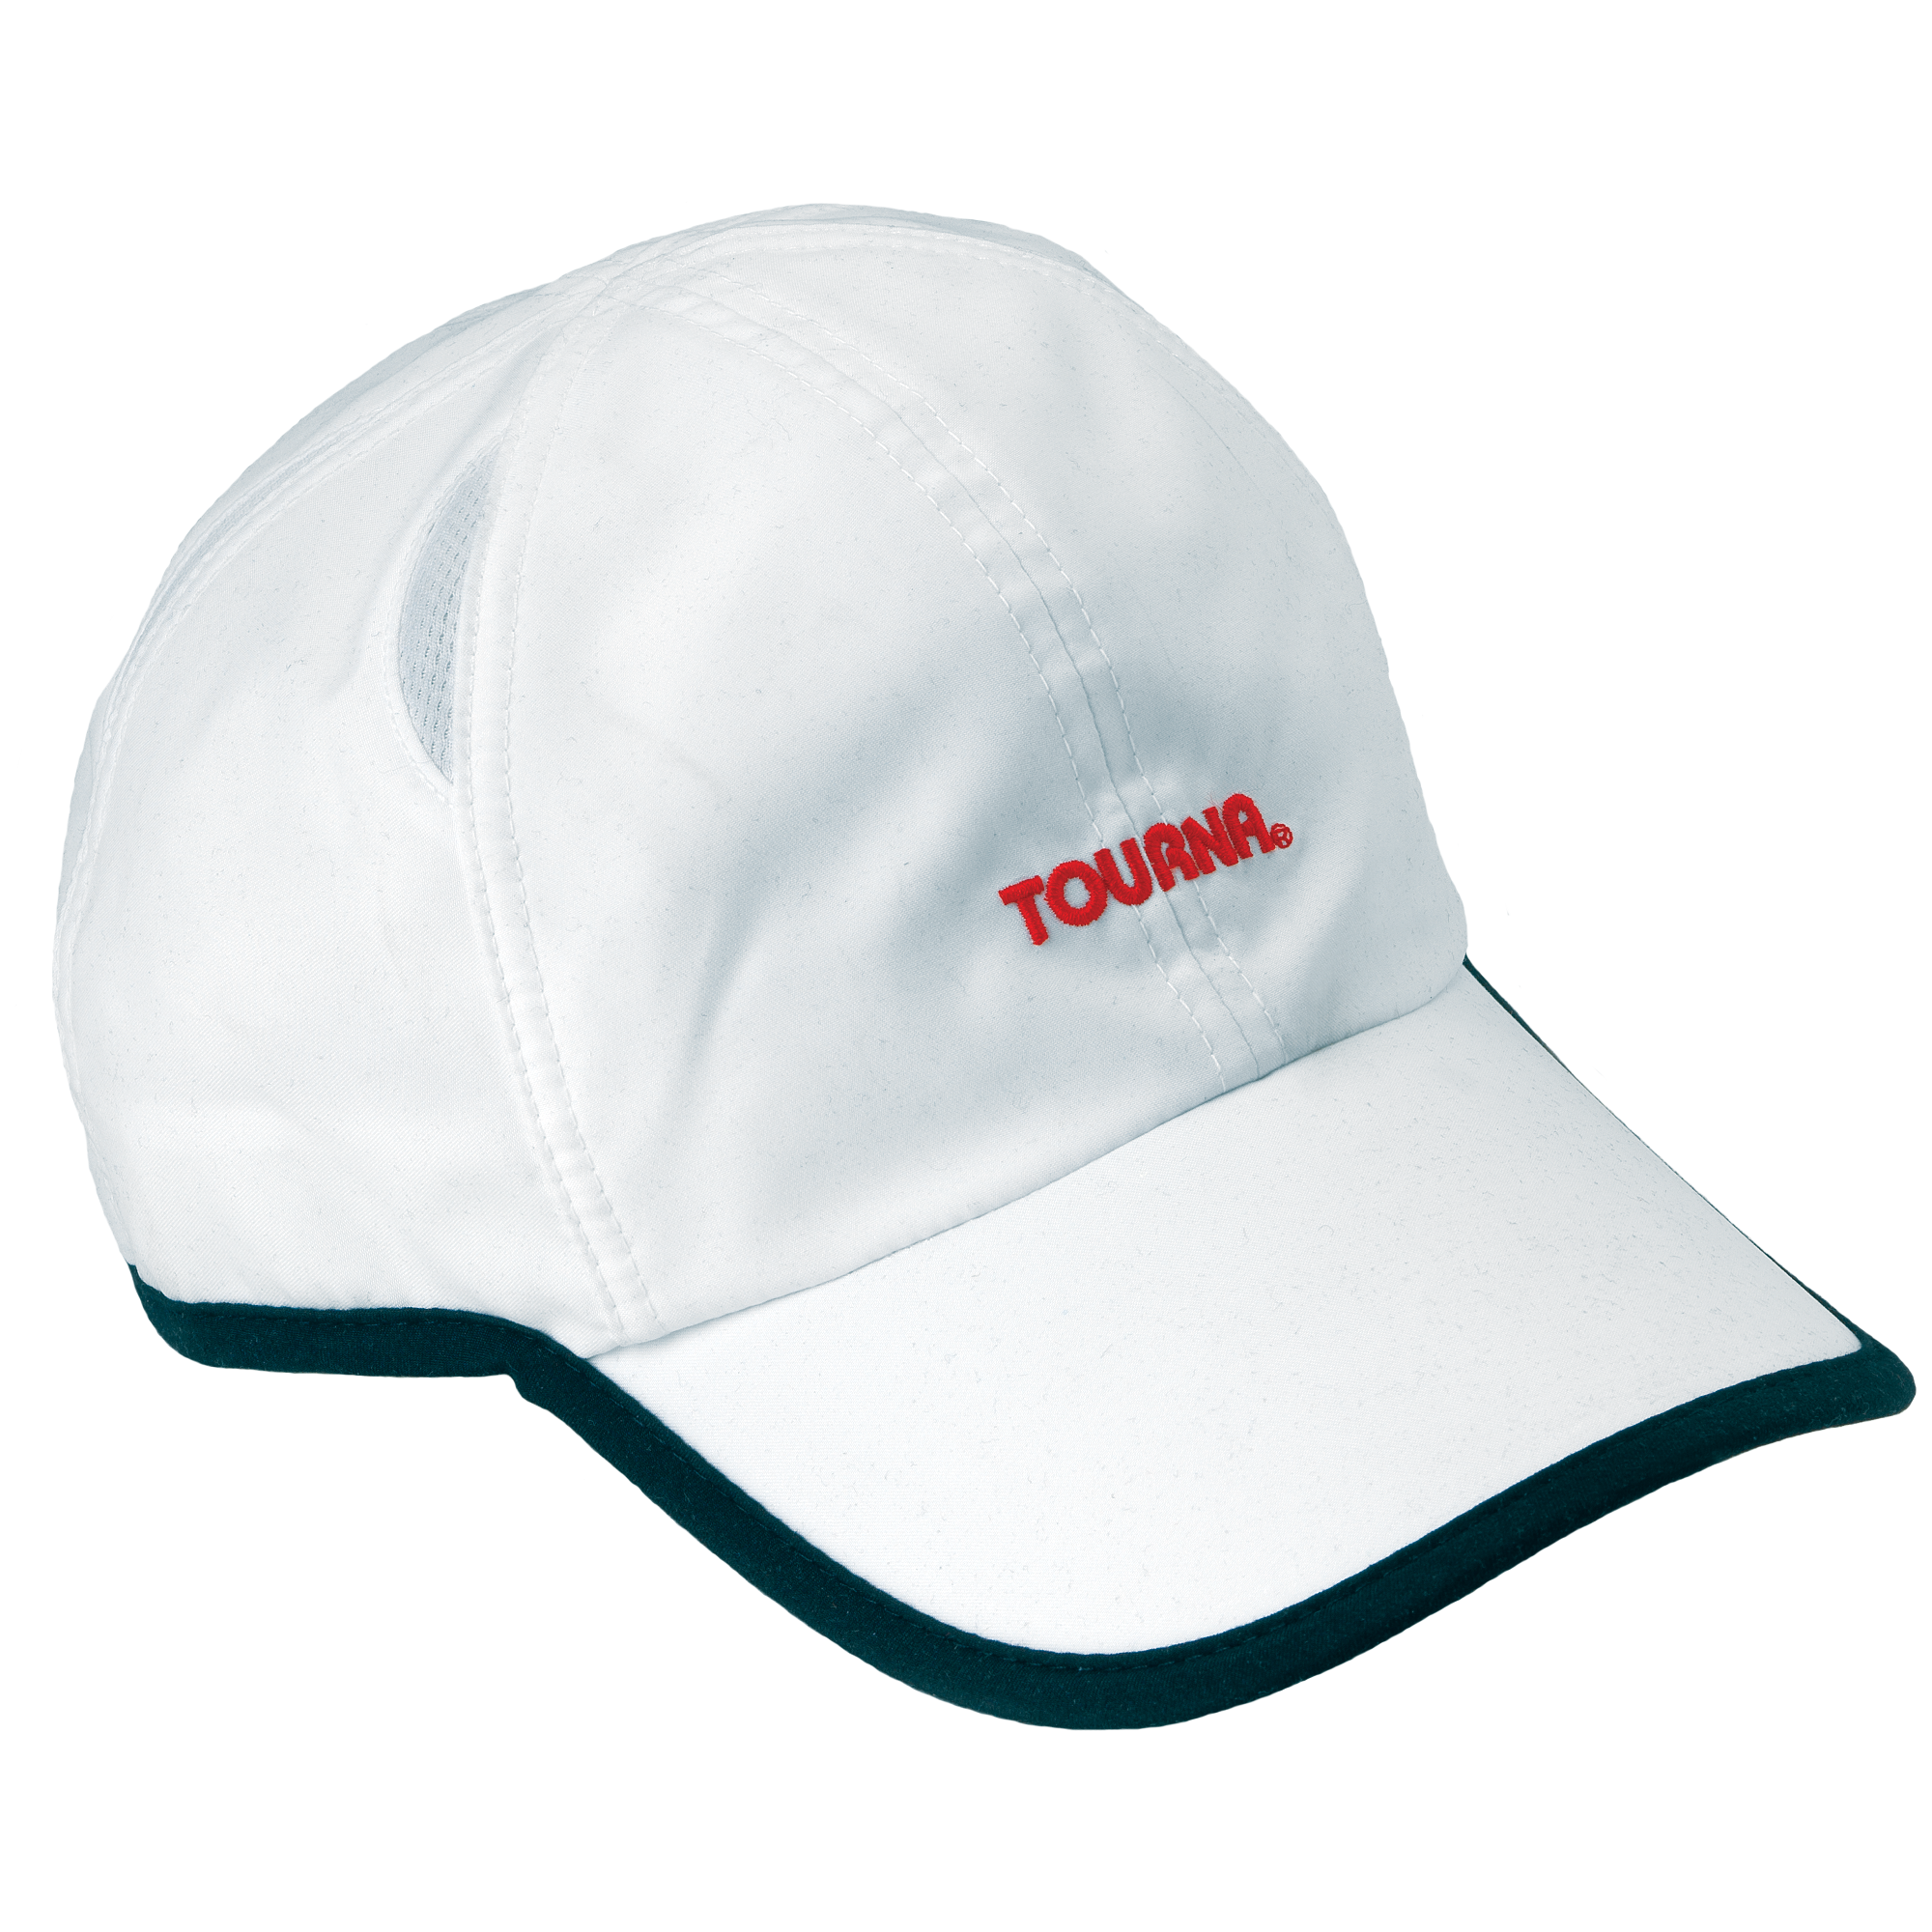 pro cap with tourna logo unique sports products